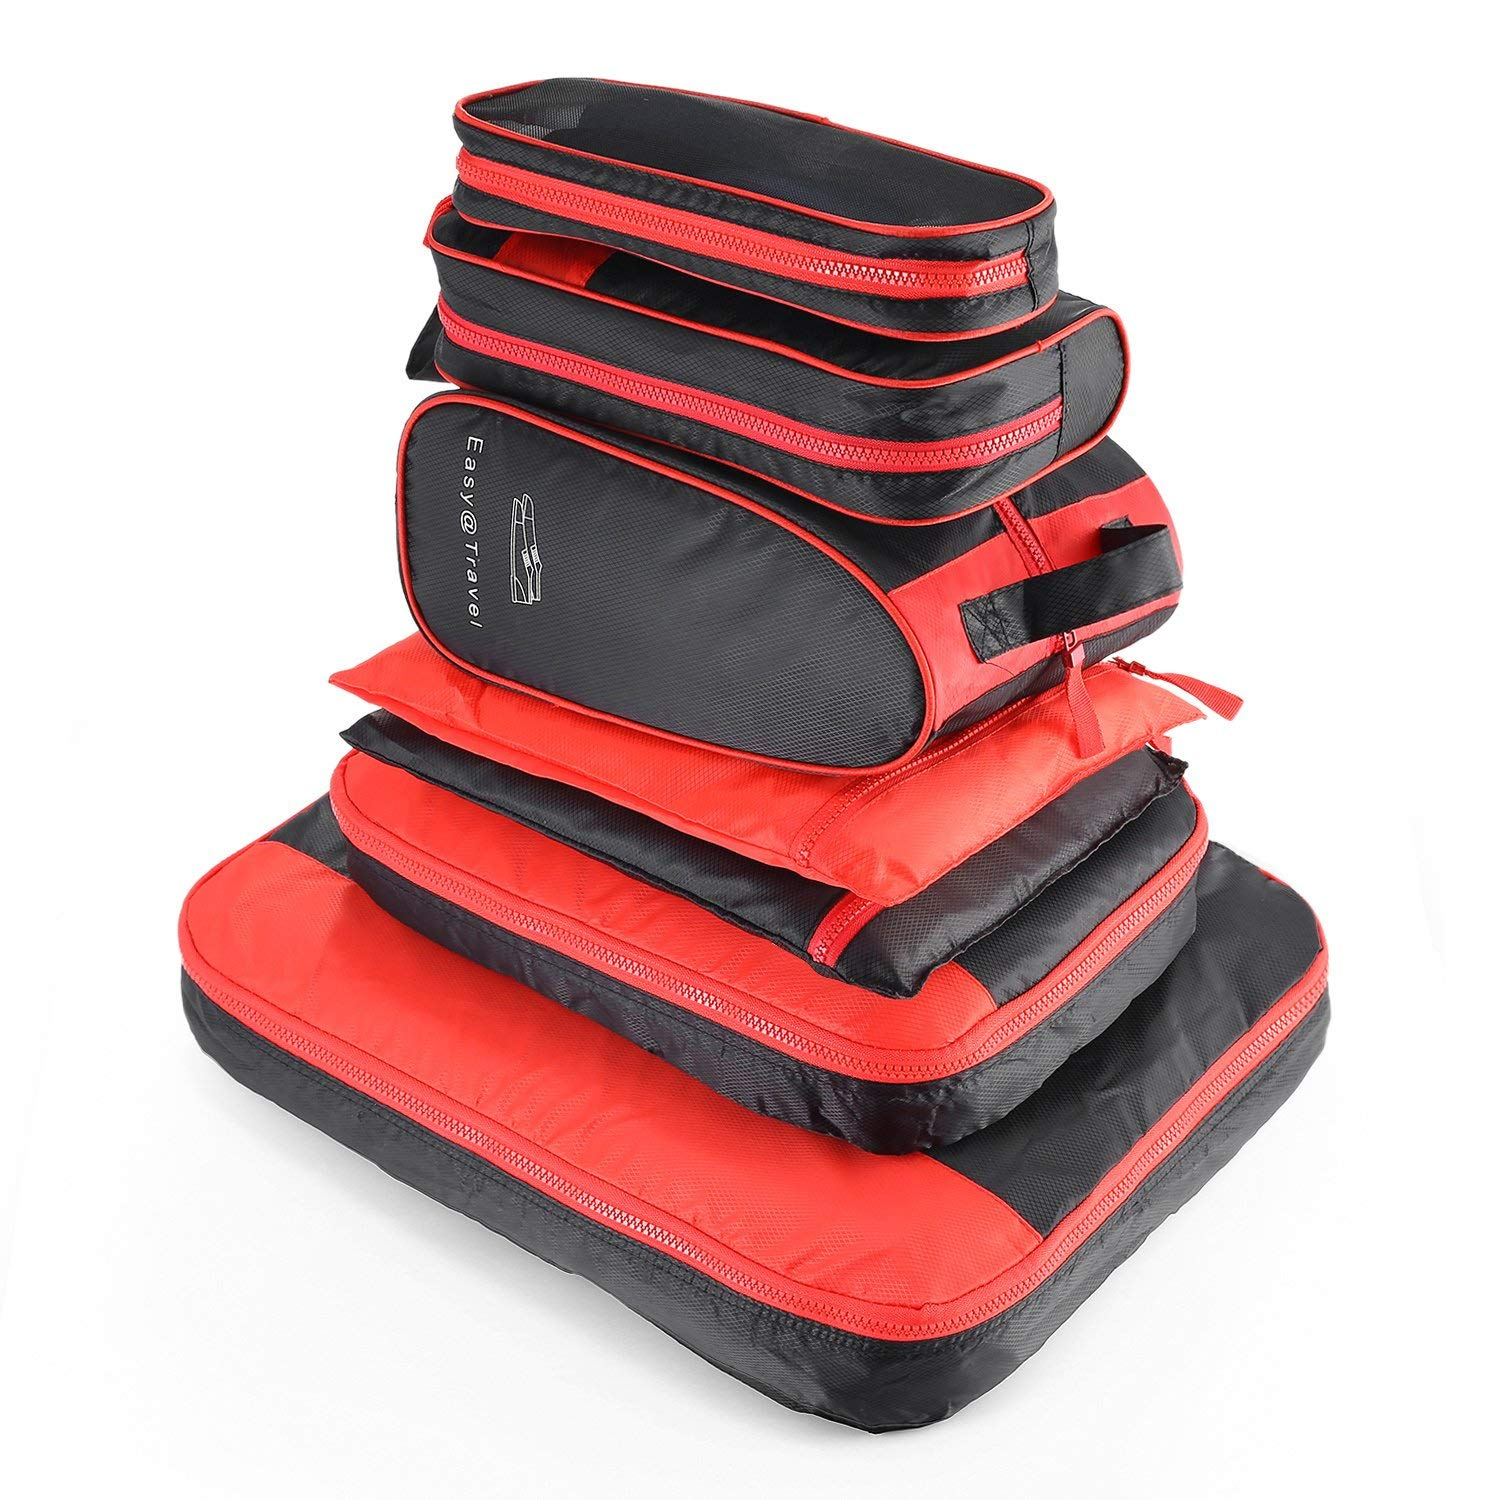 AIZBO 7 Set  Packing Cubes